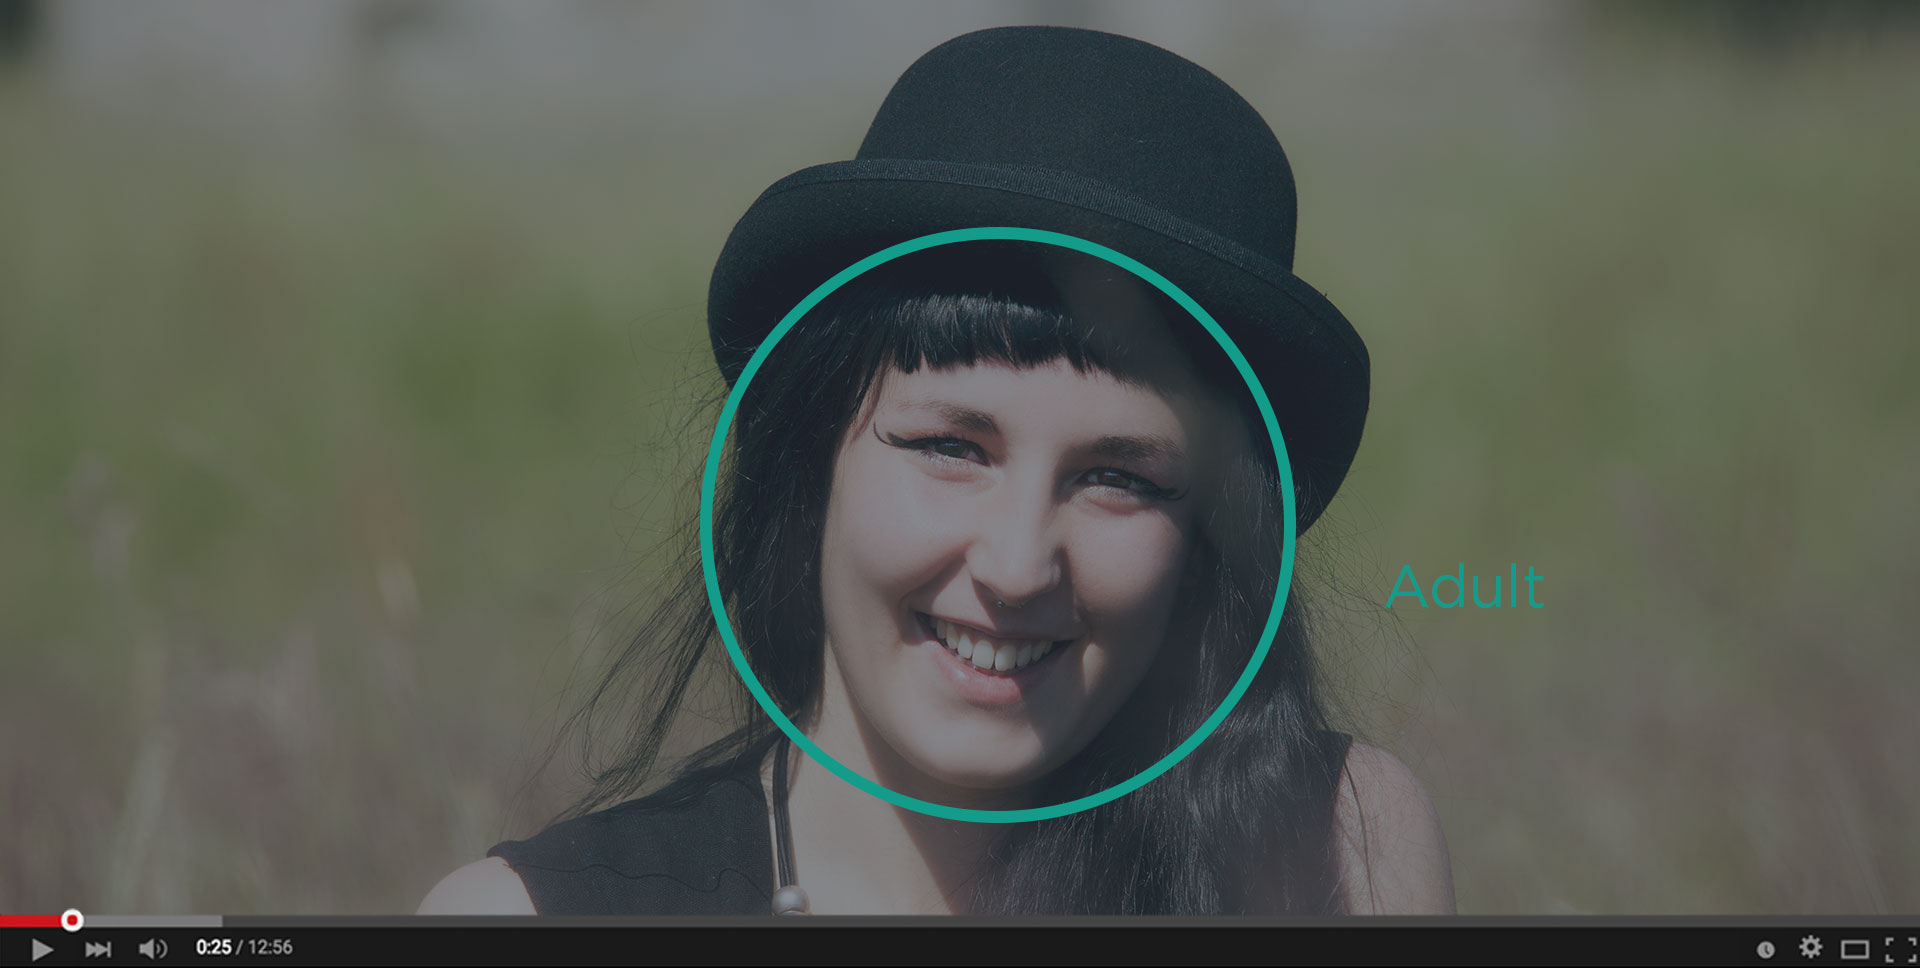 Screenshot of a media player showing the headshot of an adult female with a face detection frame overlayed and a text that reads 'Adult'.